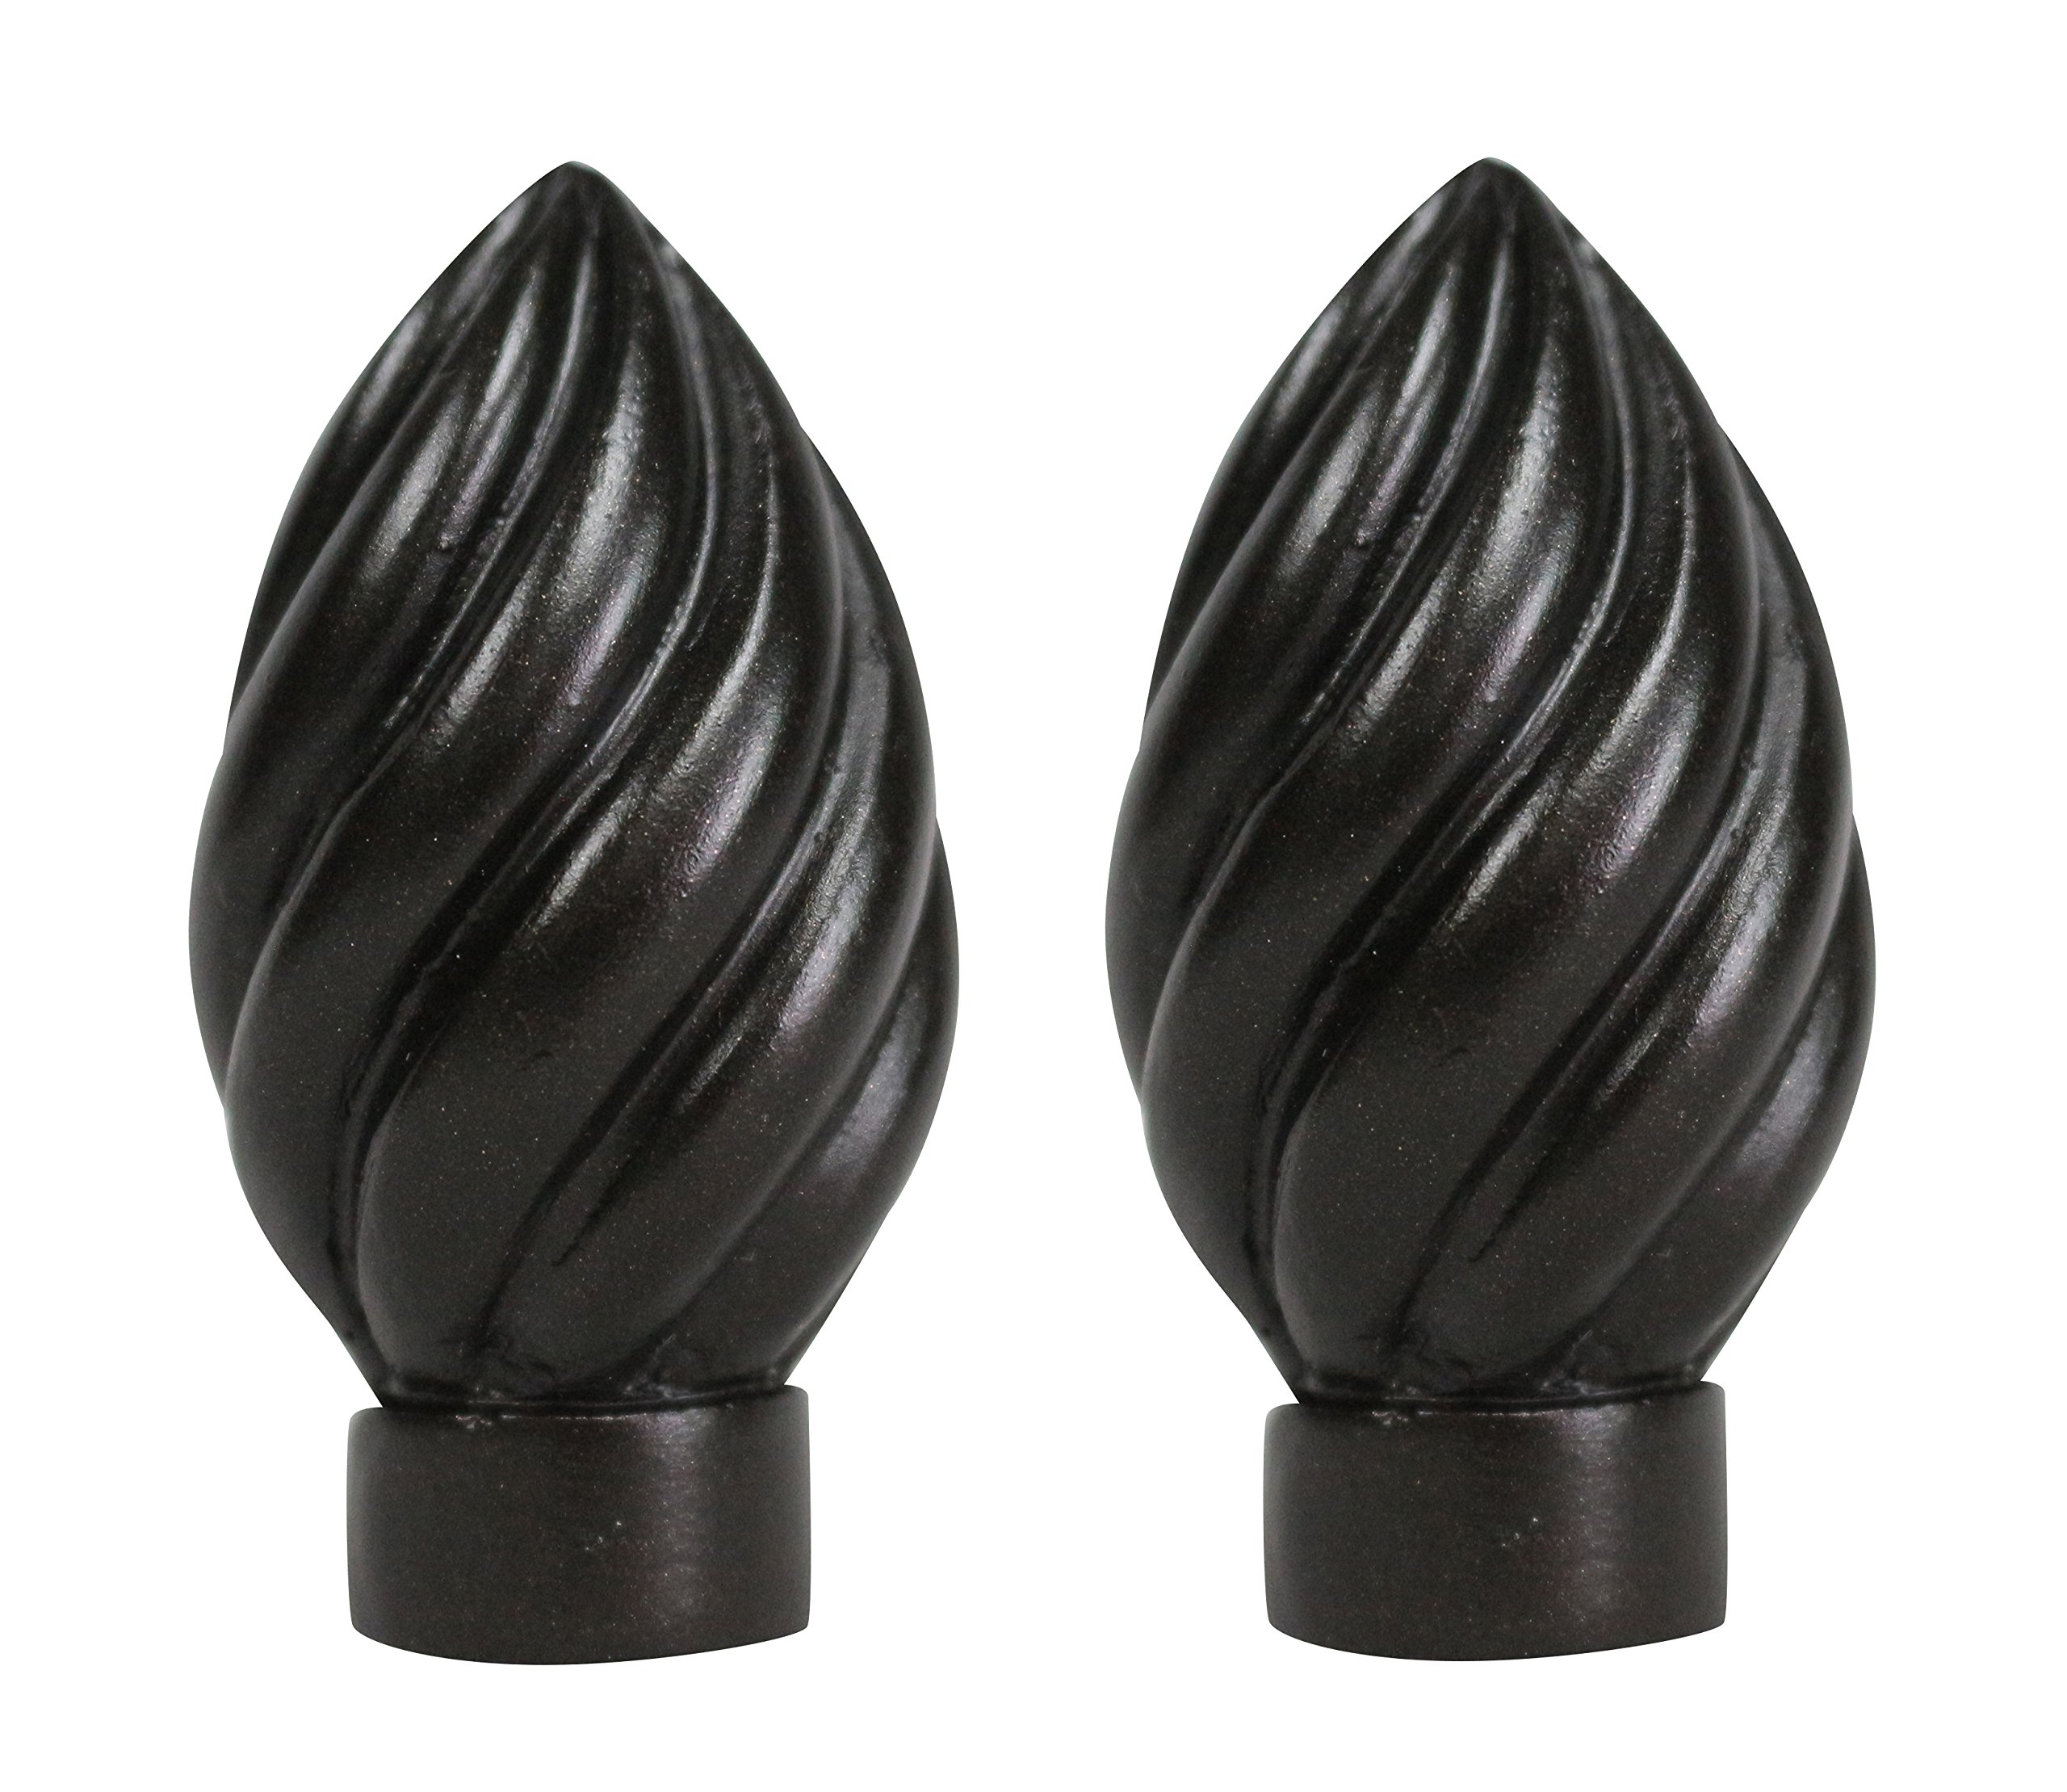 Urbanest Set of 2 Worcester Finial, 2 3/8-inch Tall, Oil-rubbed Bronze